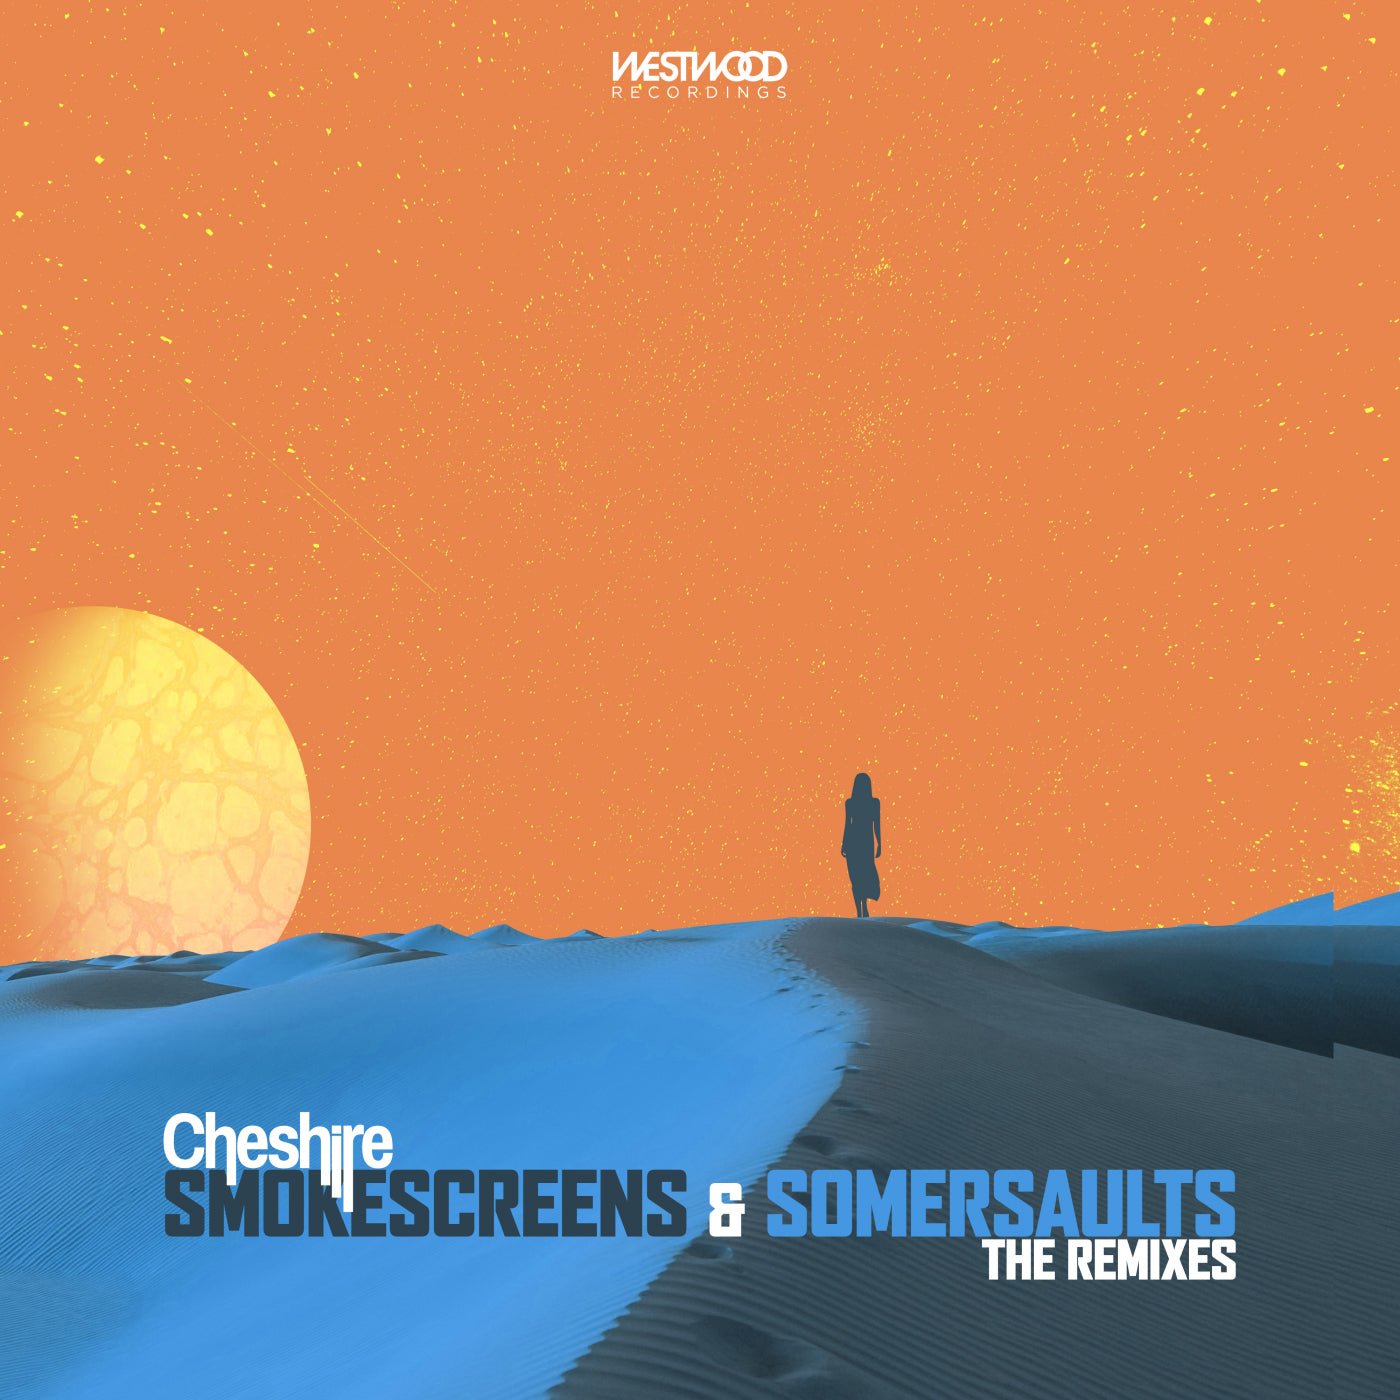 Cheshire - Smokescreens & Somersaults (The Remixes)